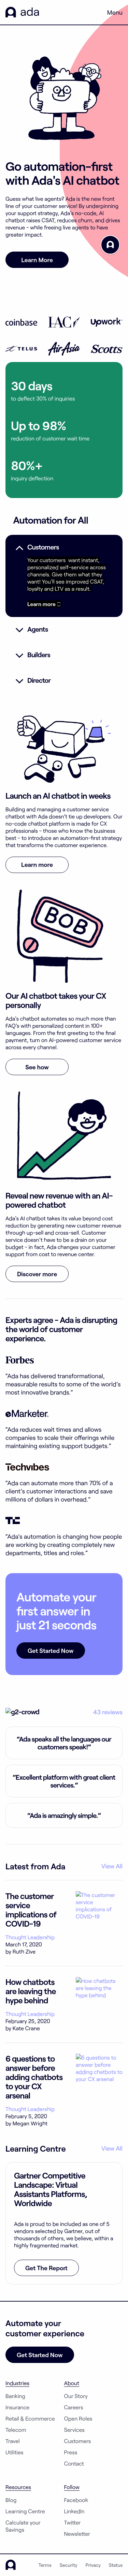 Example of Design for Business & Industrial, Mobile Landing Page by ada.support | Mobile Landing Page Design